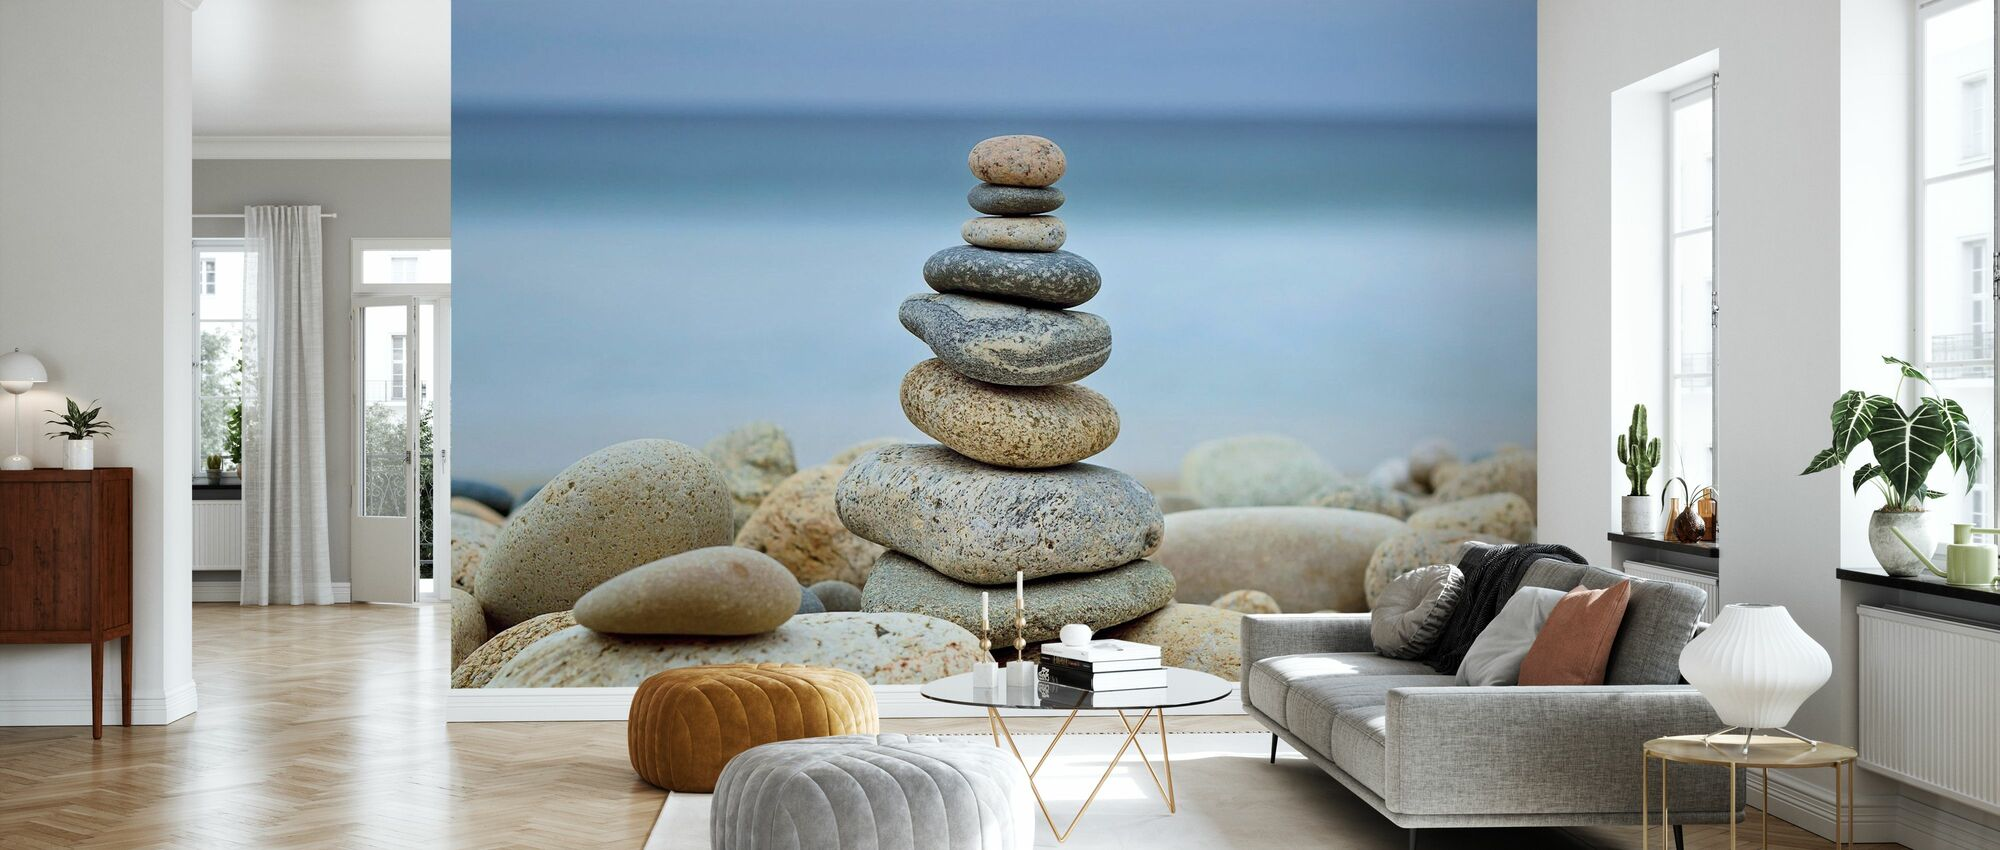 Stone Wall Beach Cairn - Wallpaper - Living Room